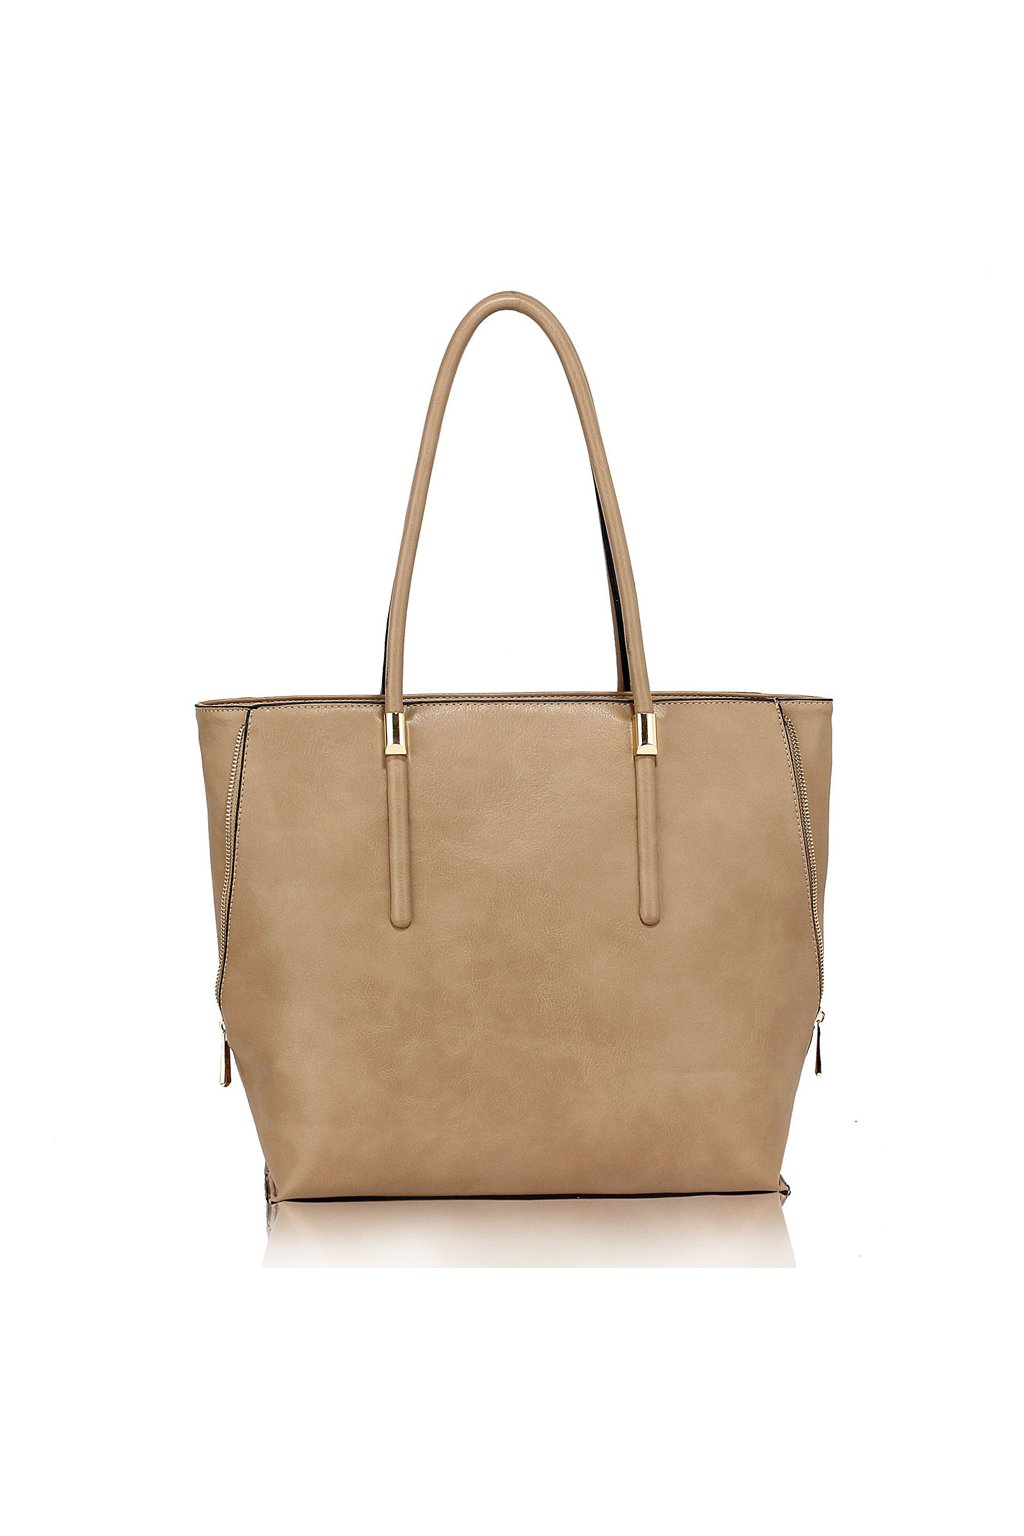 AG00494 TAUPE 1